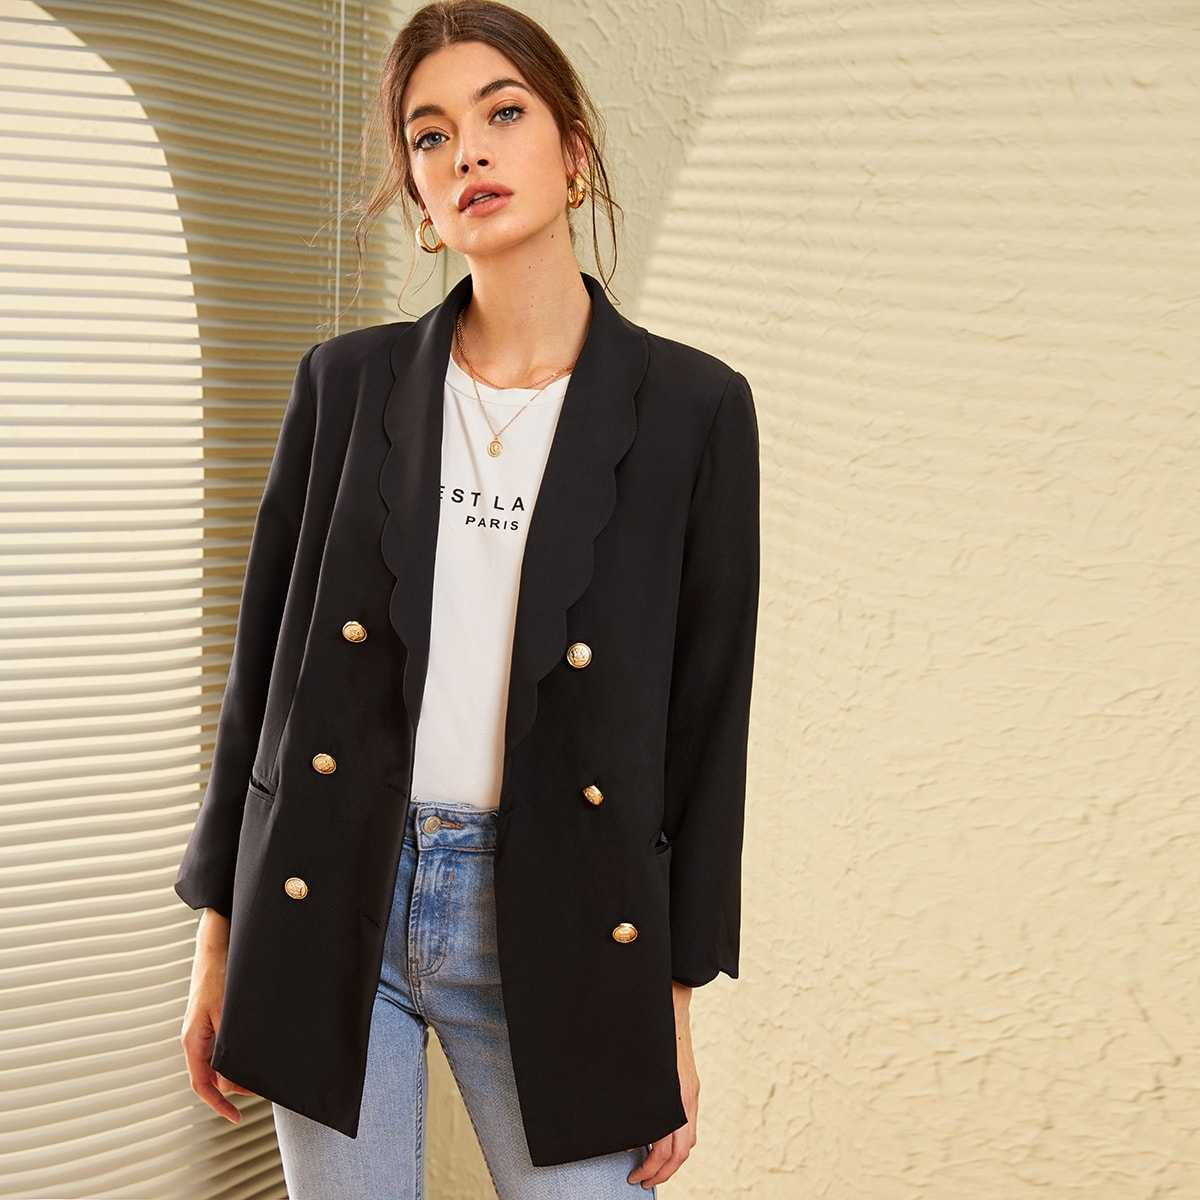 Scallop Shawl Collar Gold Button Front Blazer in Black by ROMWE on GOOFASH